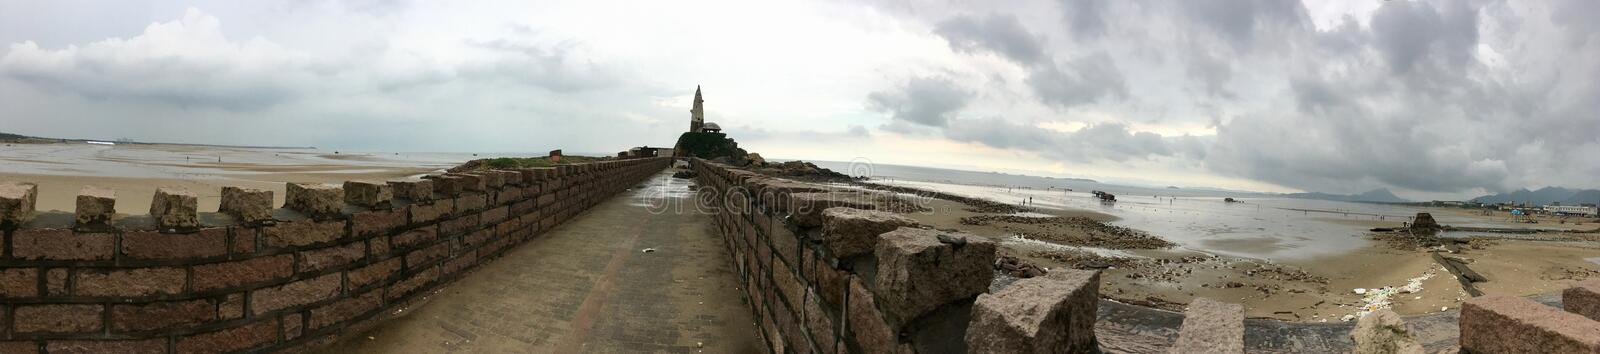 View panorama the old stone wall to the lighthouse in the sea in China. Morning sea landscape on a cloudy rainy day. royalty free stock photos